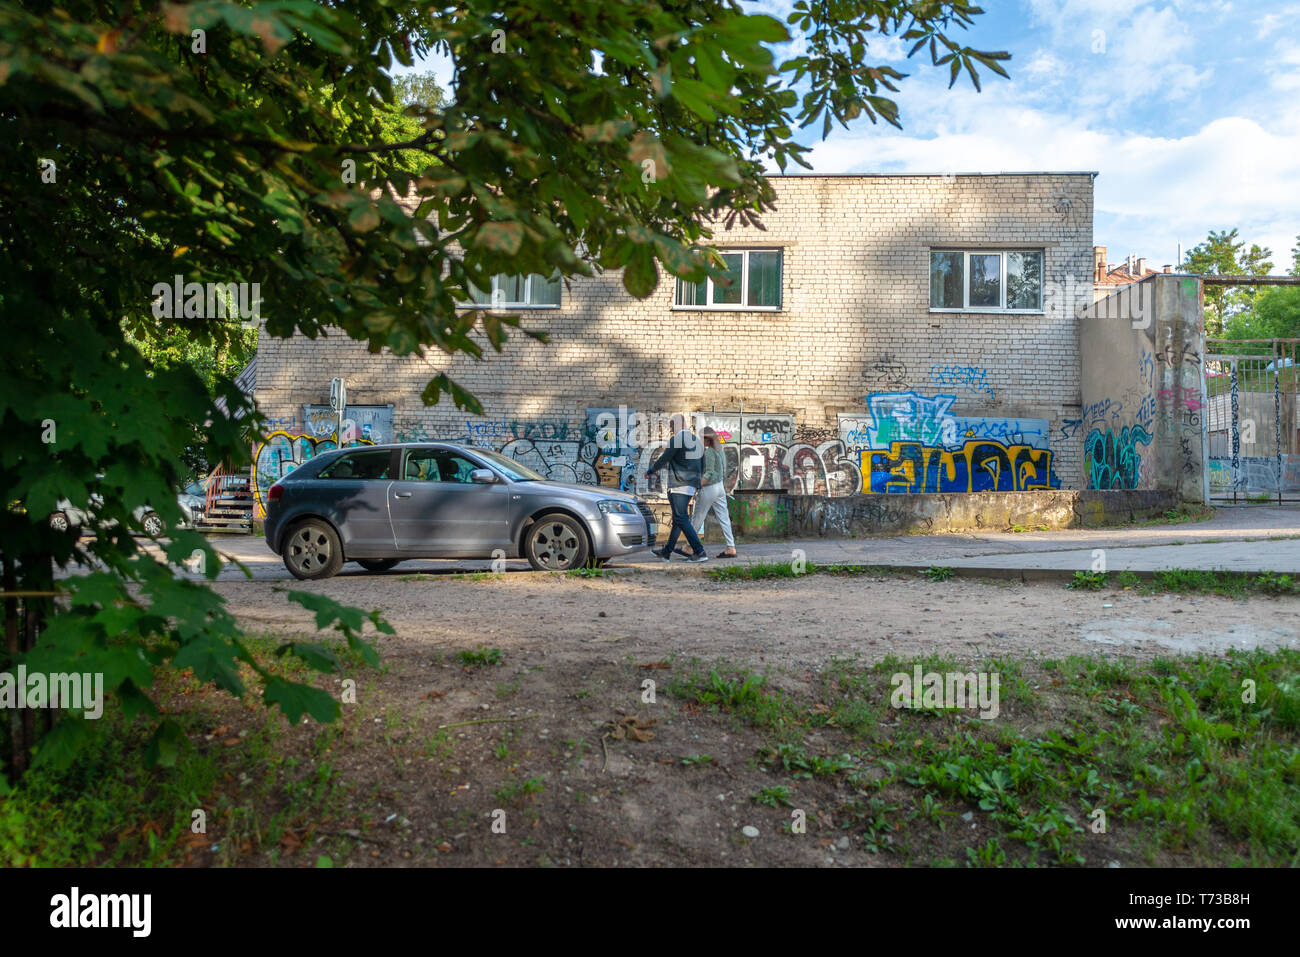 A couple is walking in front of graffiti on a back alley in Vilnius, Lithuania Stock Photo